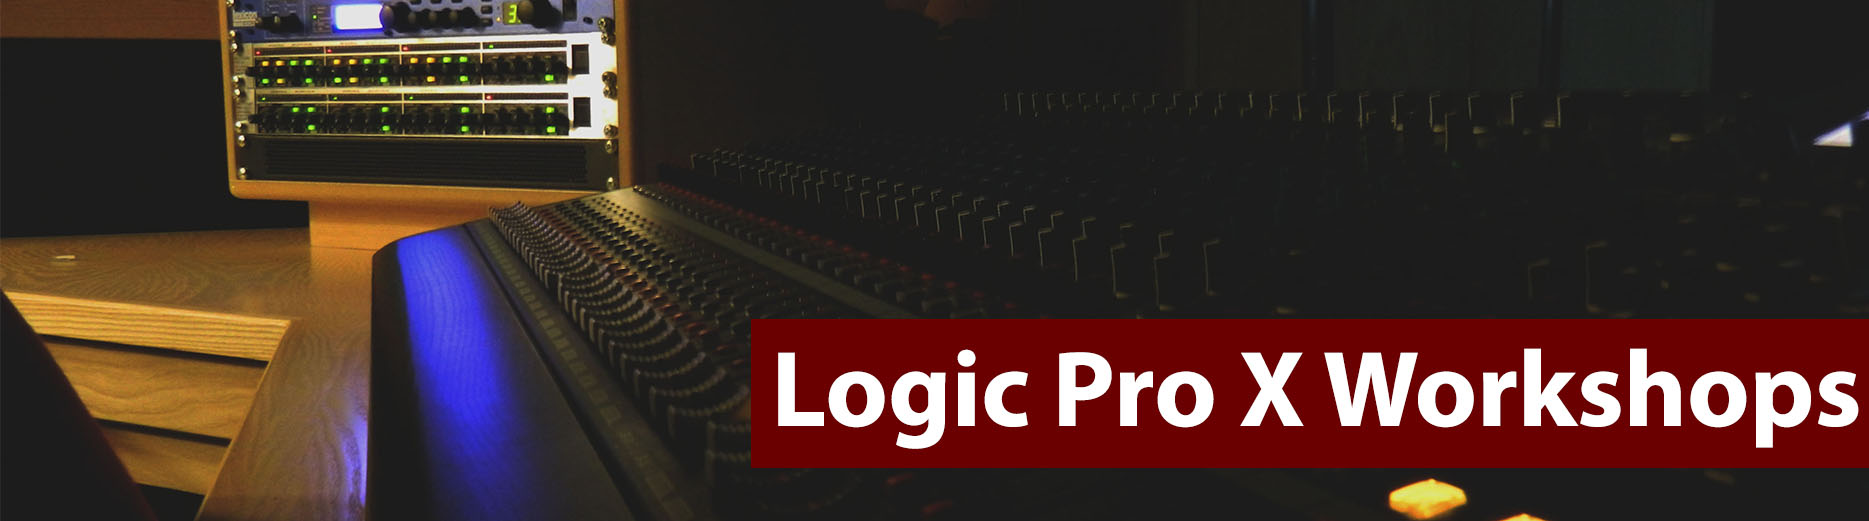 logic pro x workshops small